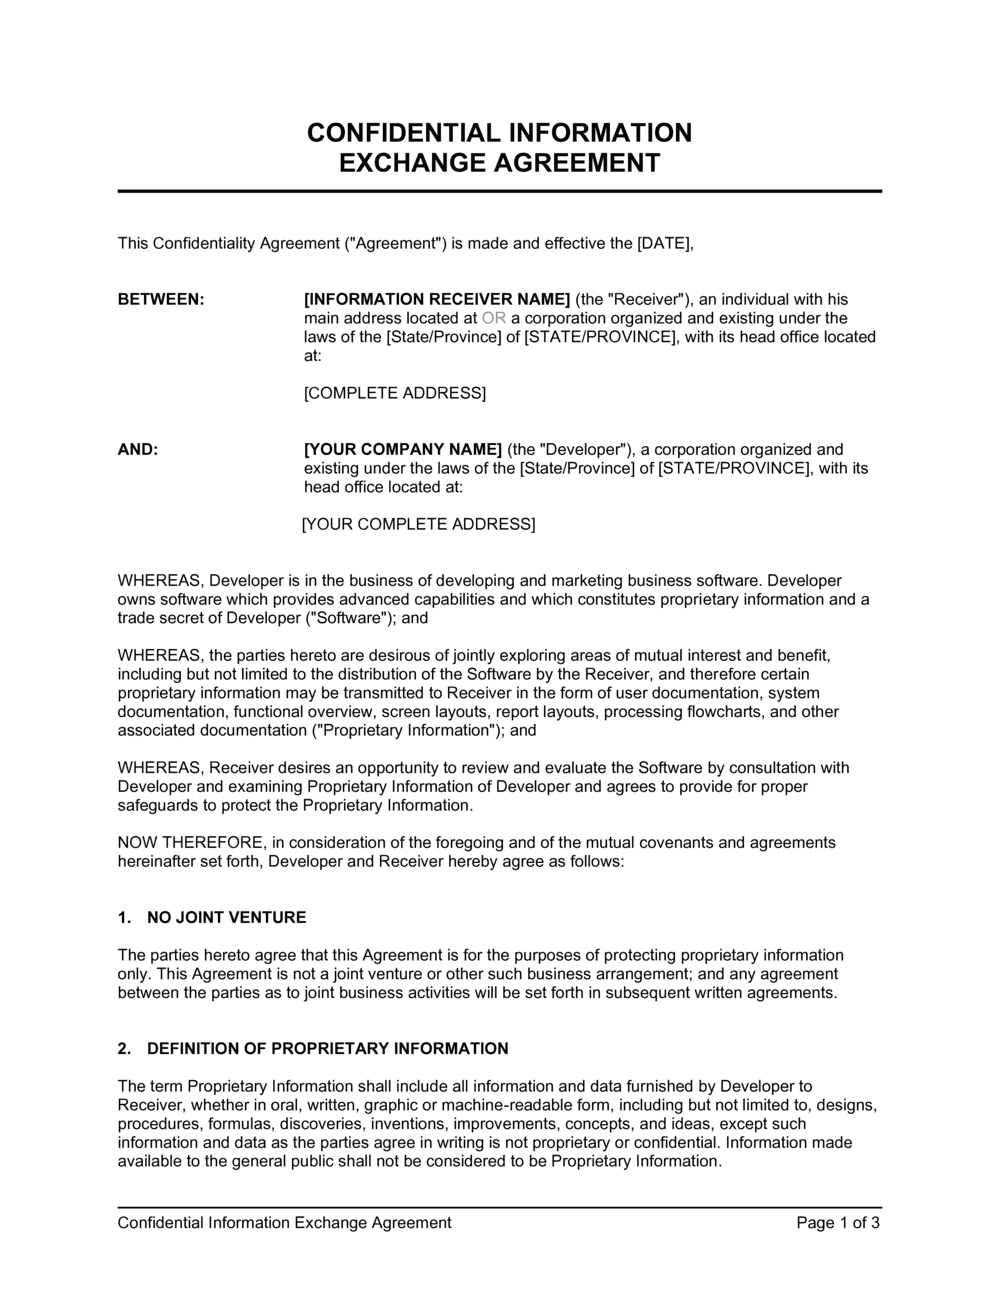 Business-in-a-Box's Confidential Information Exchange Agreement Template